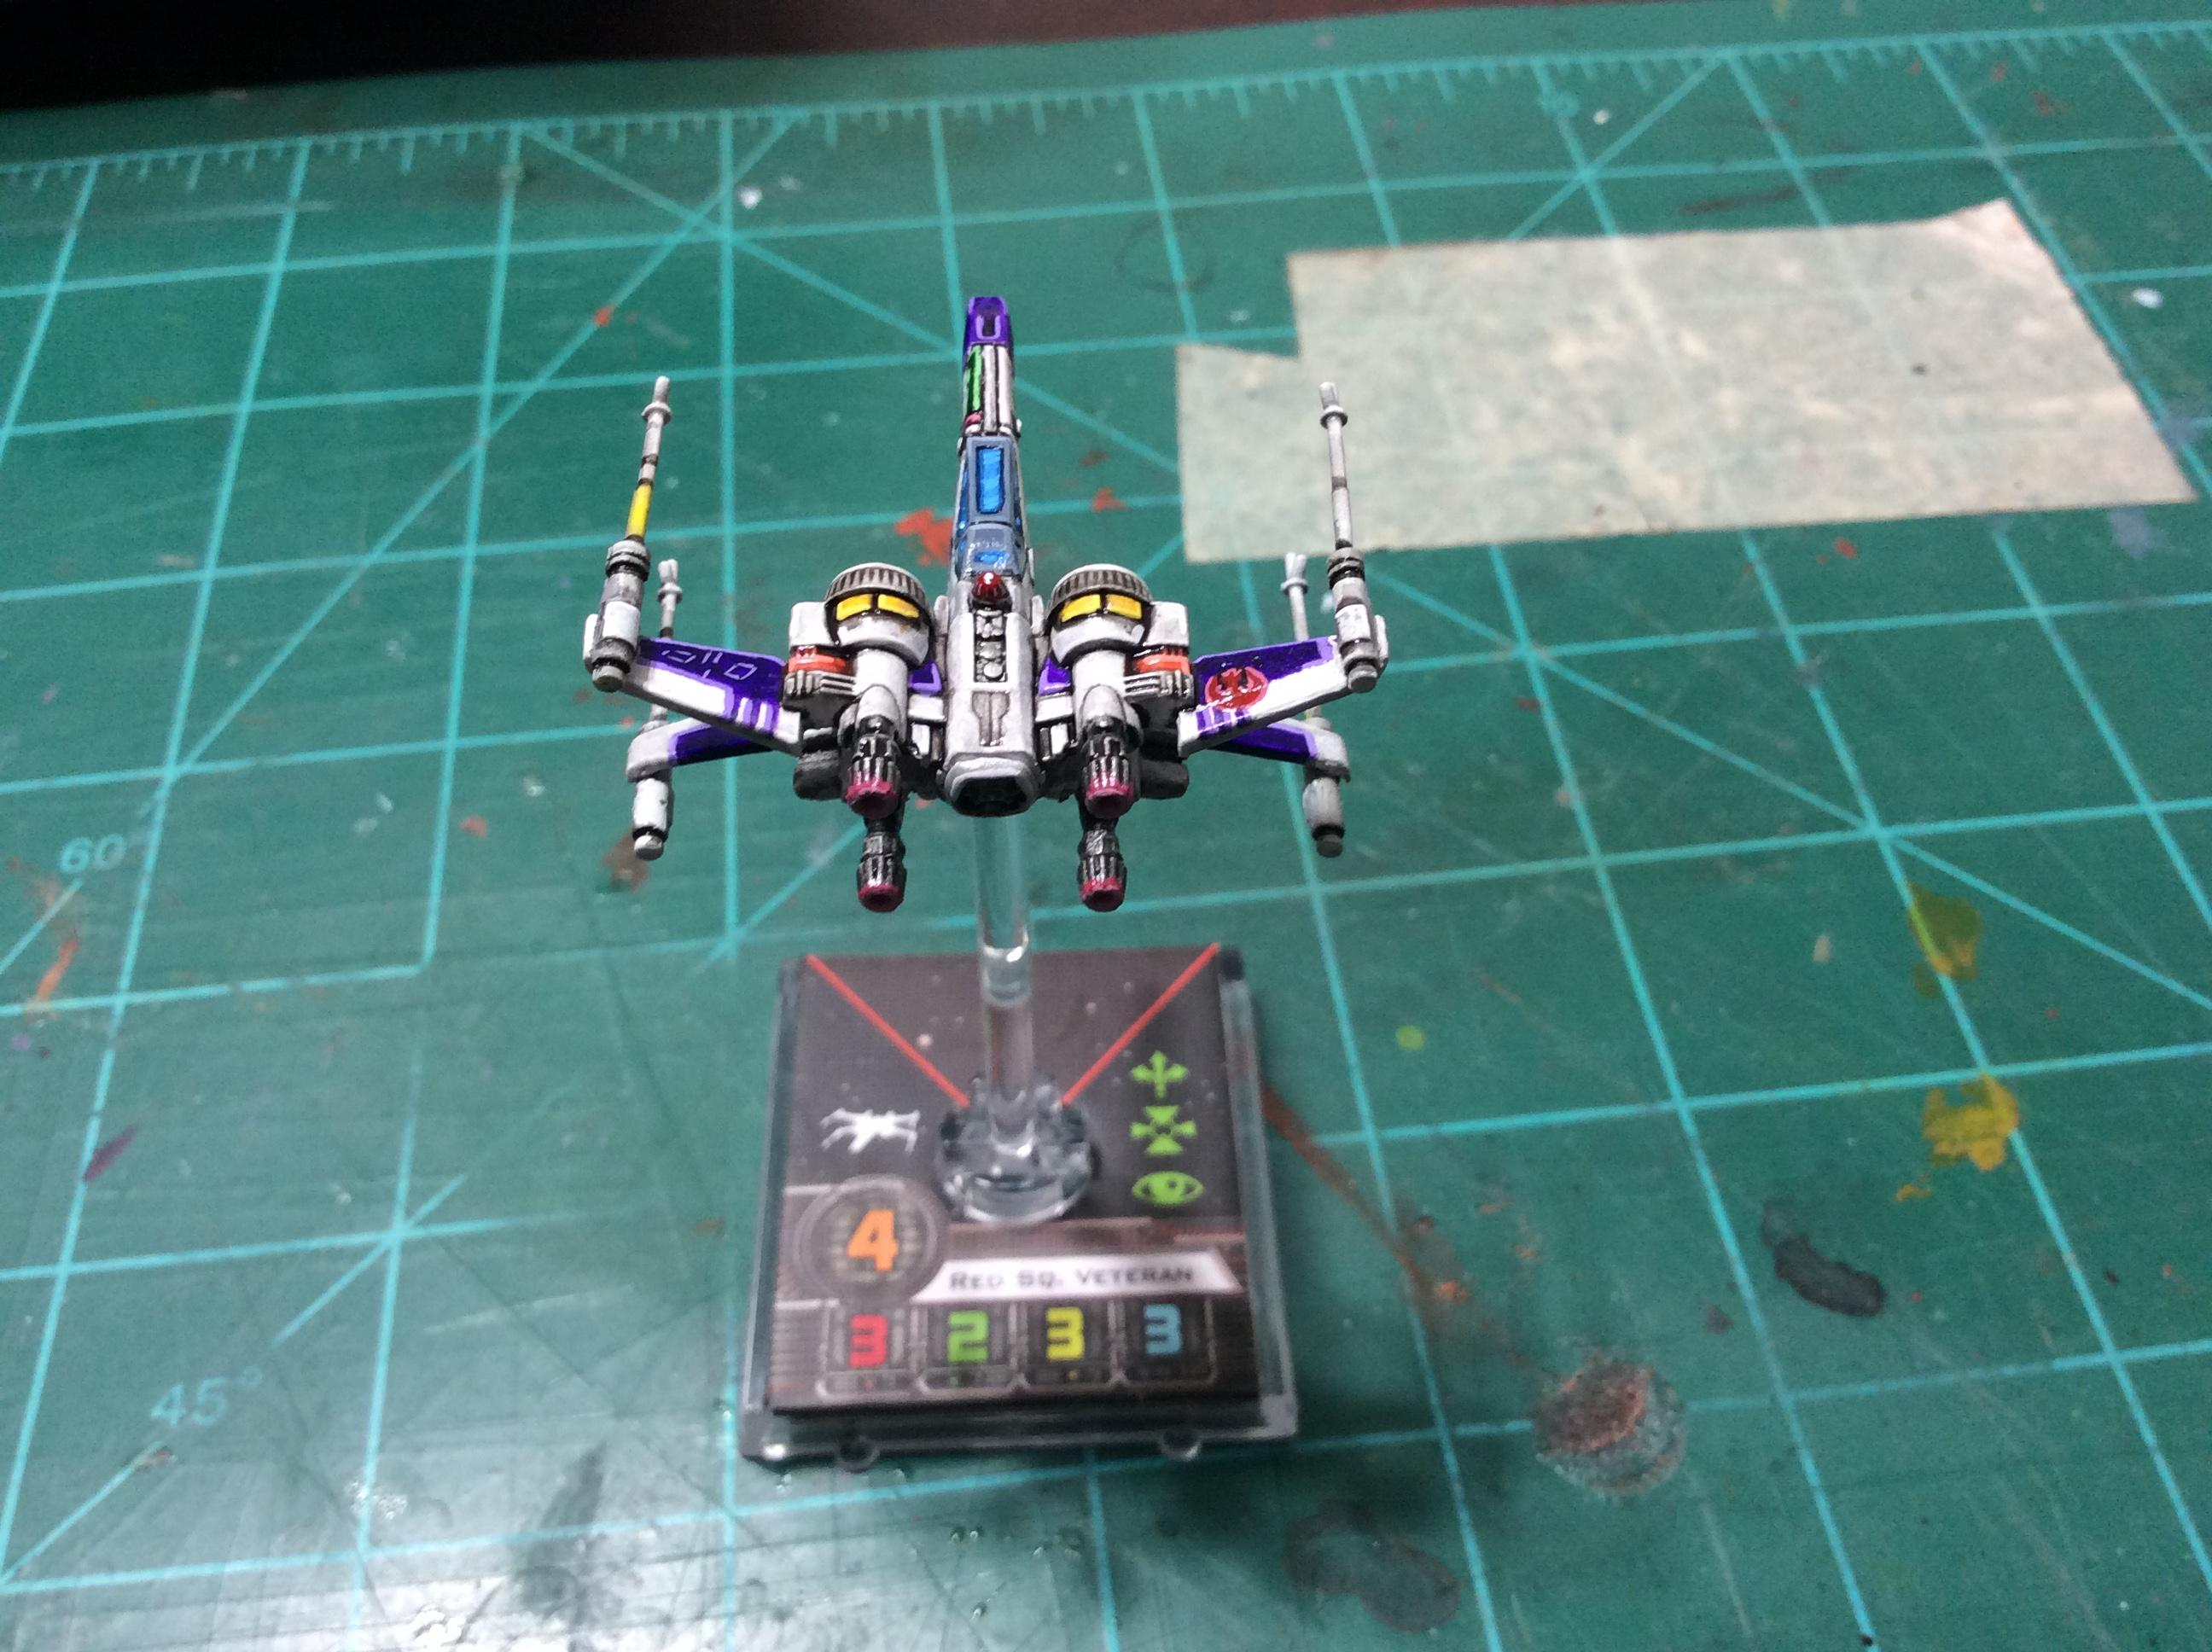 1/270, 1:270, Miniature, Star Wars, X-wing Miniature Board Game